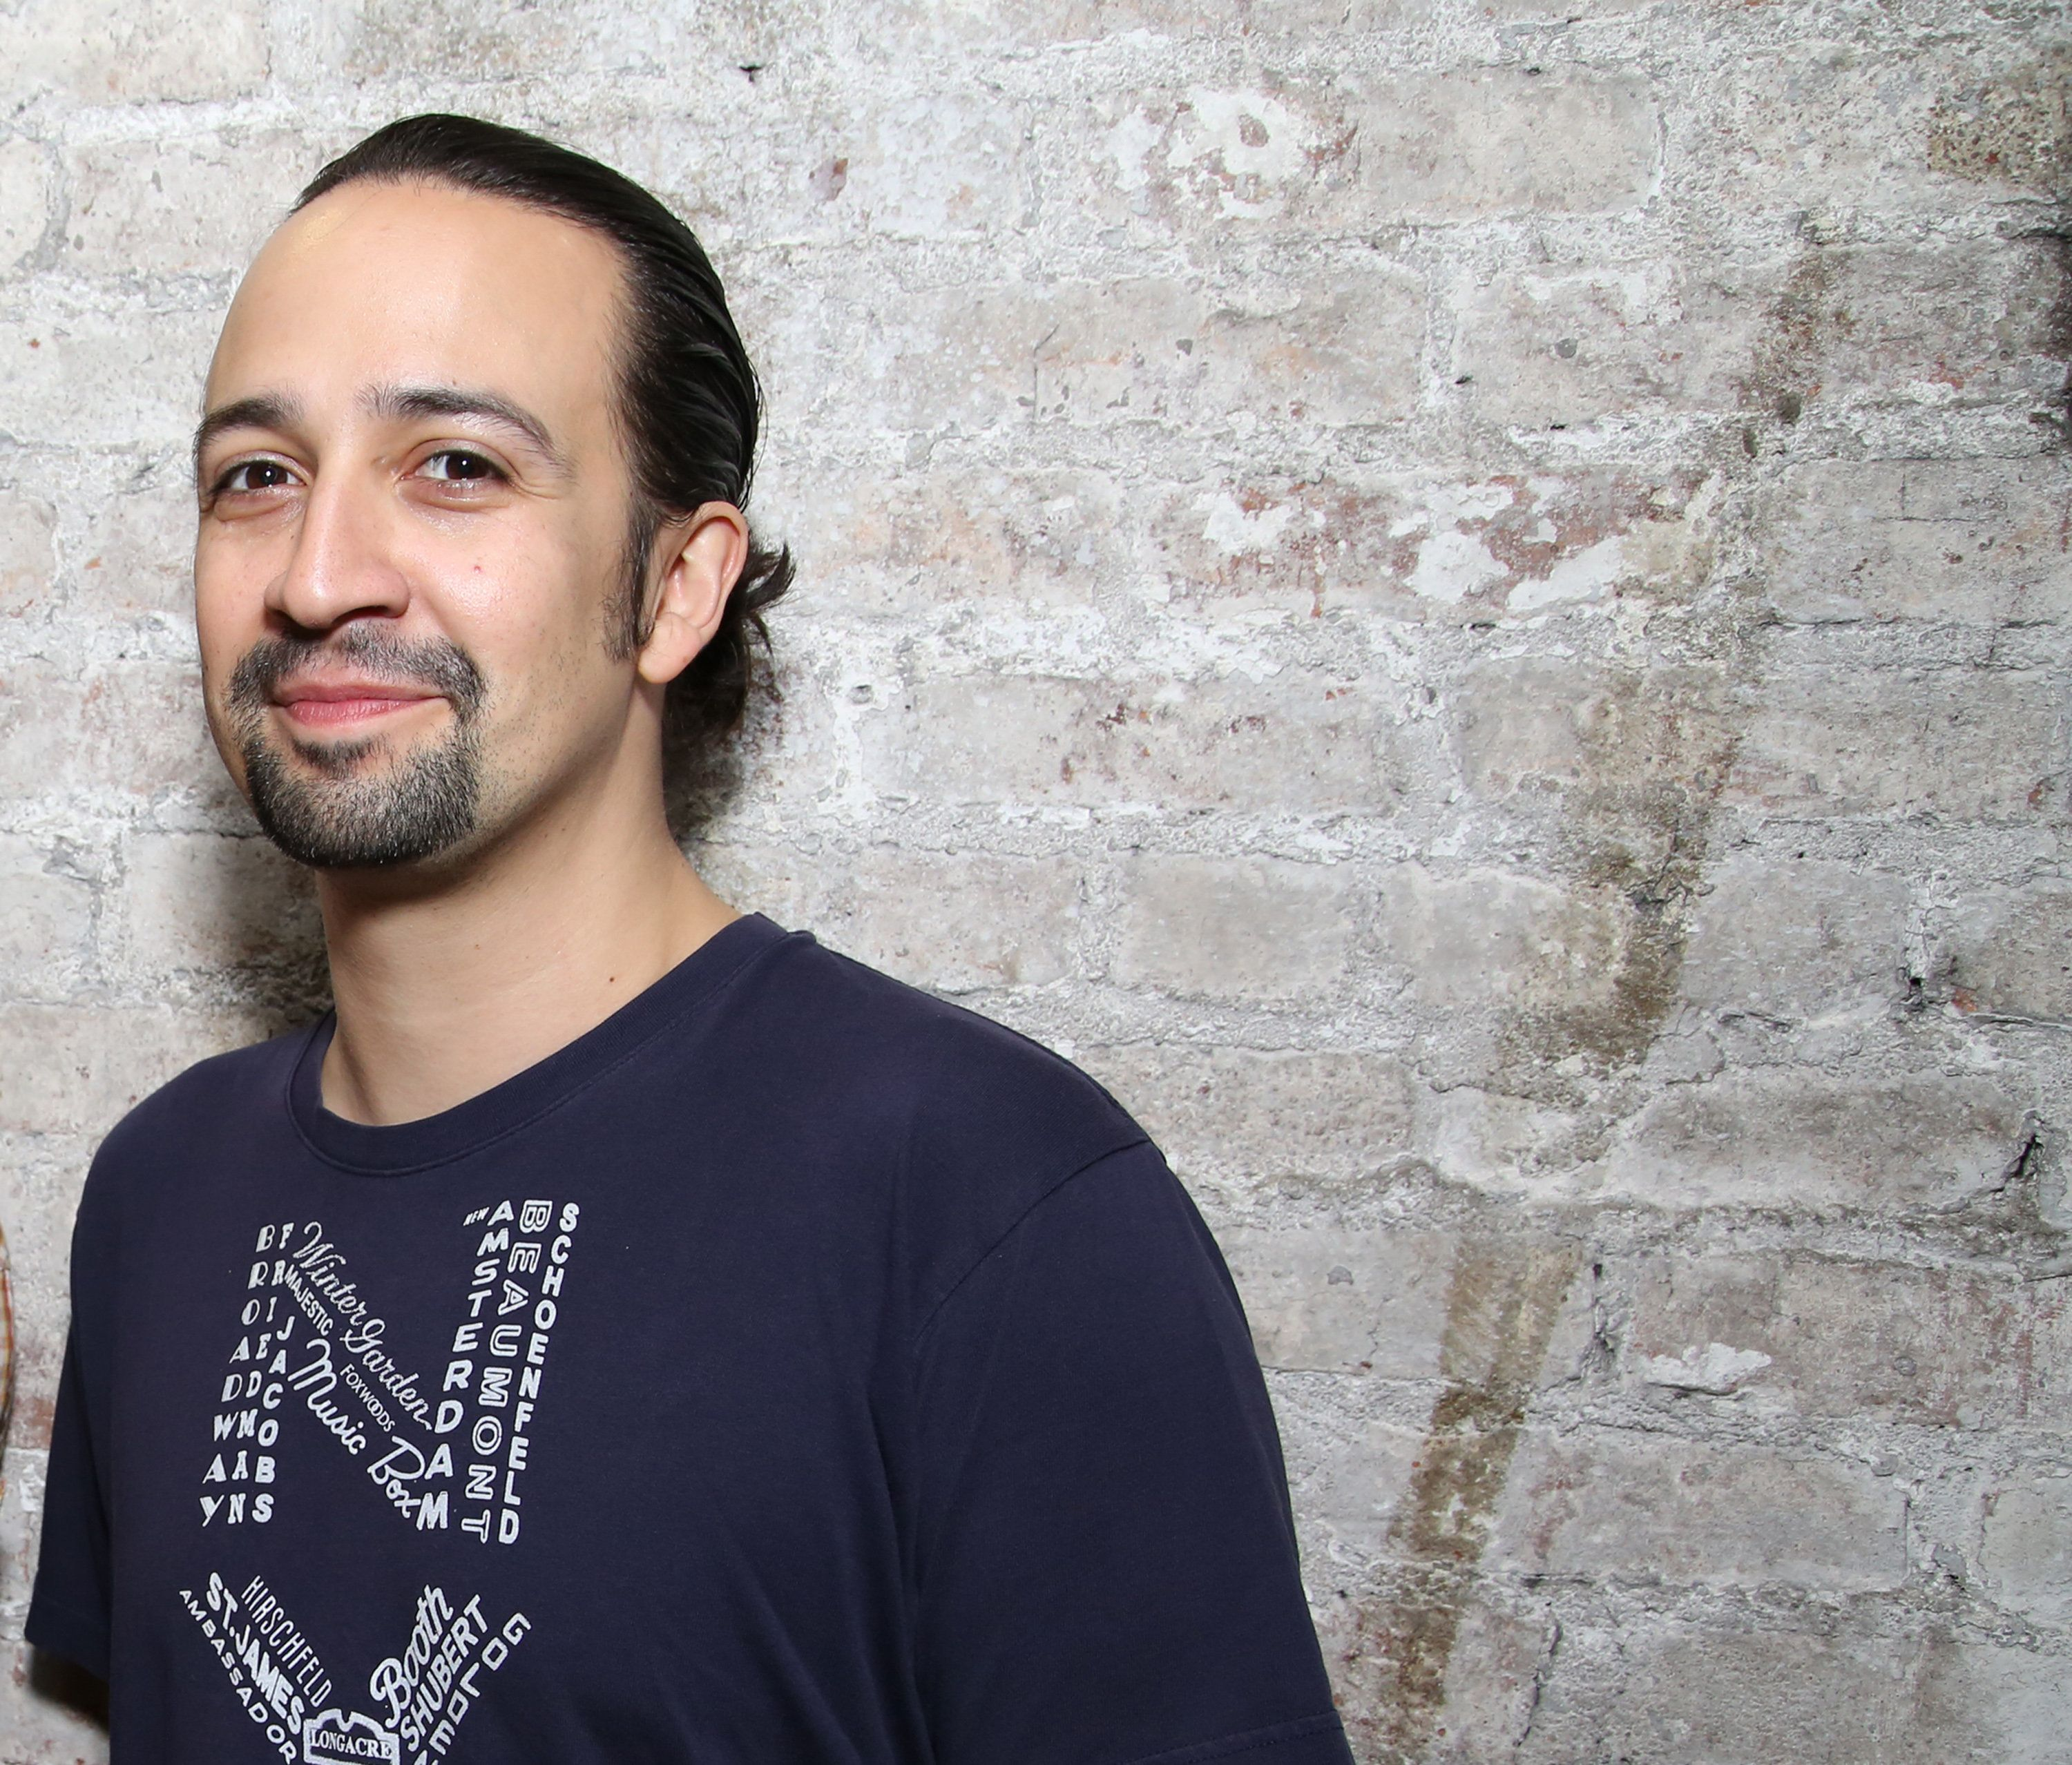 NEW YORK, NY - JUNE 16:  Lin-Manuel Miranda who plays the title character in the Tony Award winning musical 'Hamilton' at the Richard Rodgers Theater on June 16, 2016 in New York City.  (Photo by Walter McBride/Getty Images)